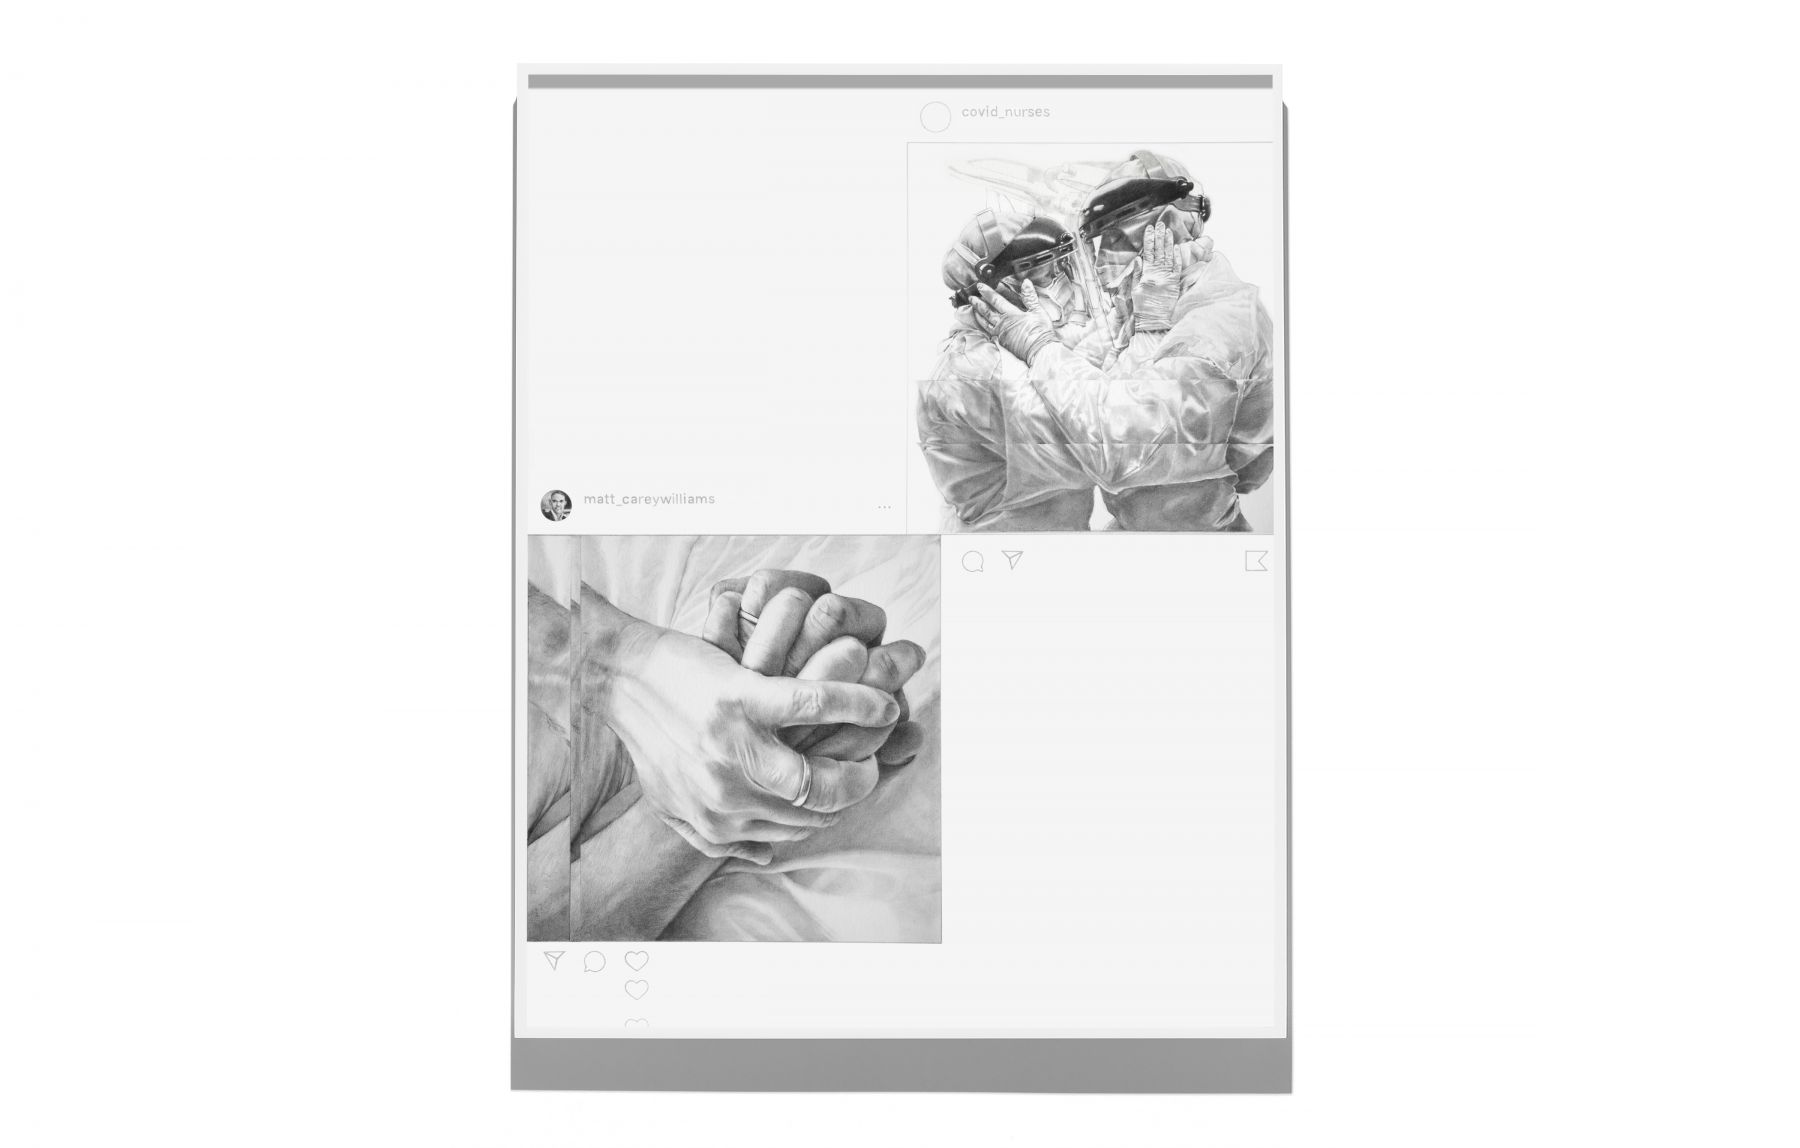 A drawing based on two Instagram posts, one that shows two medical workers in protective equipment embracing and one showing two hands clasped